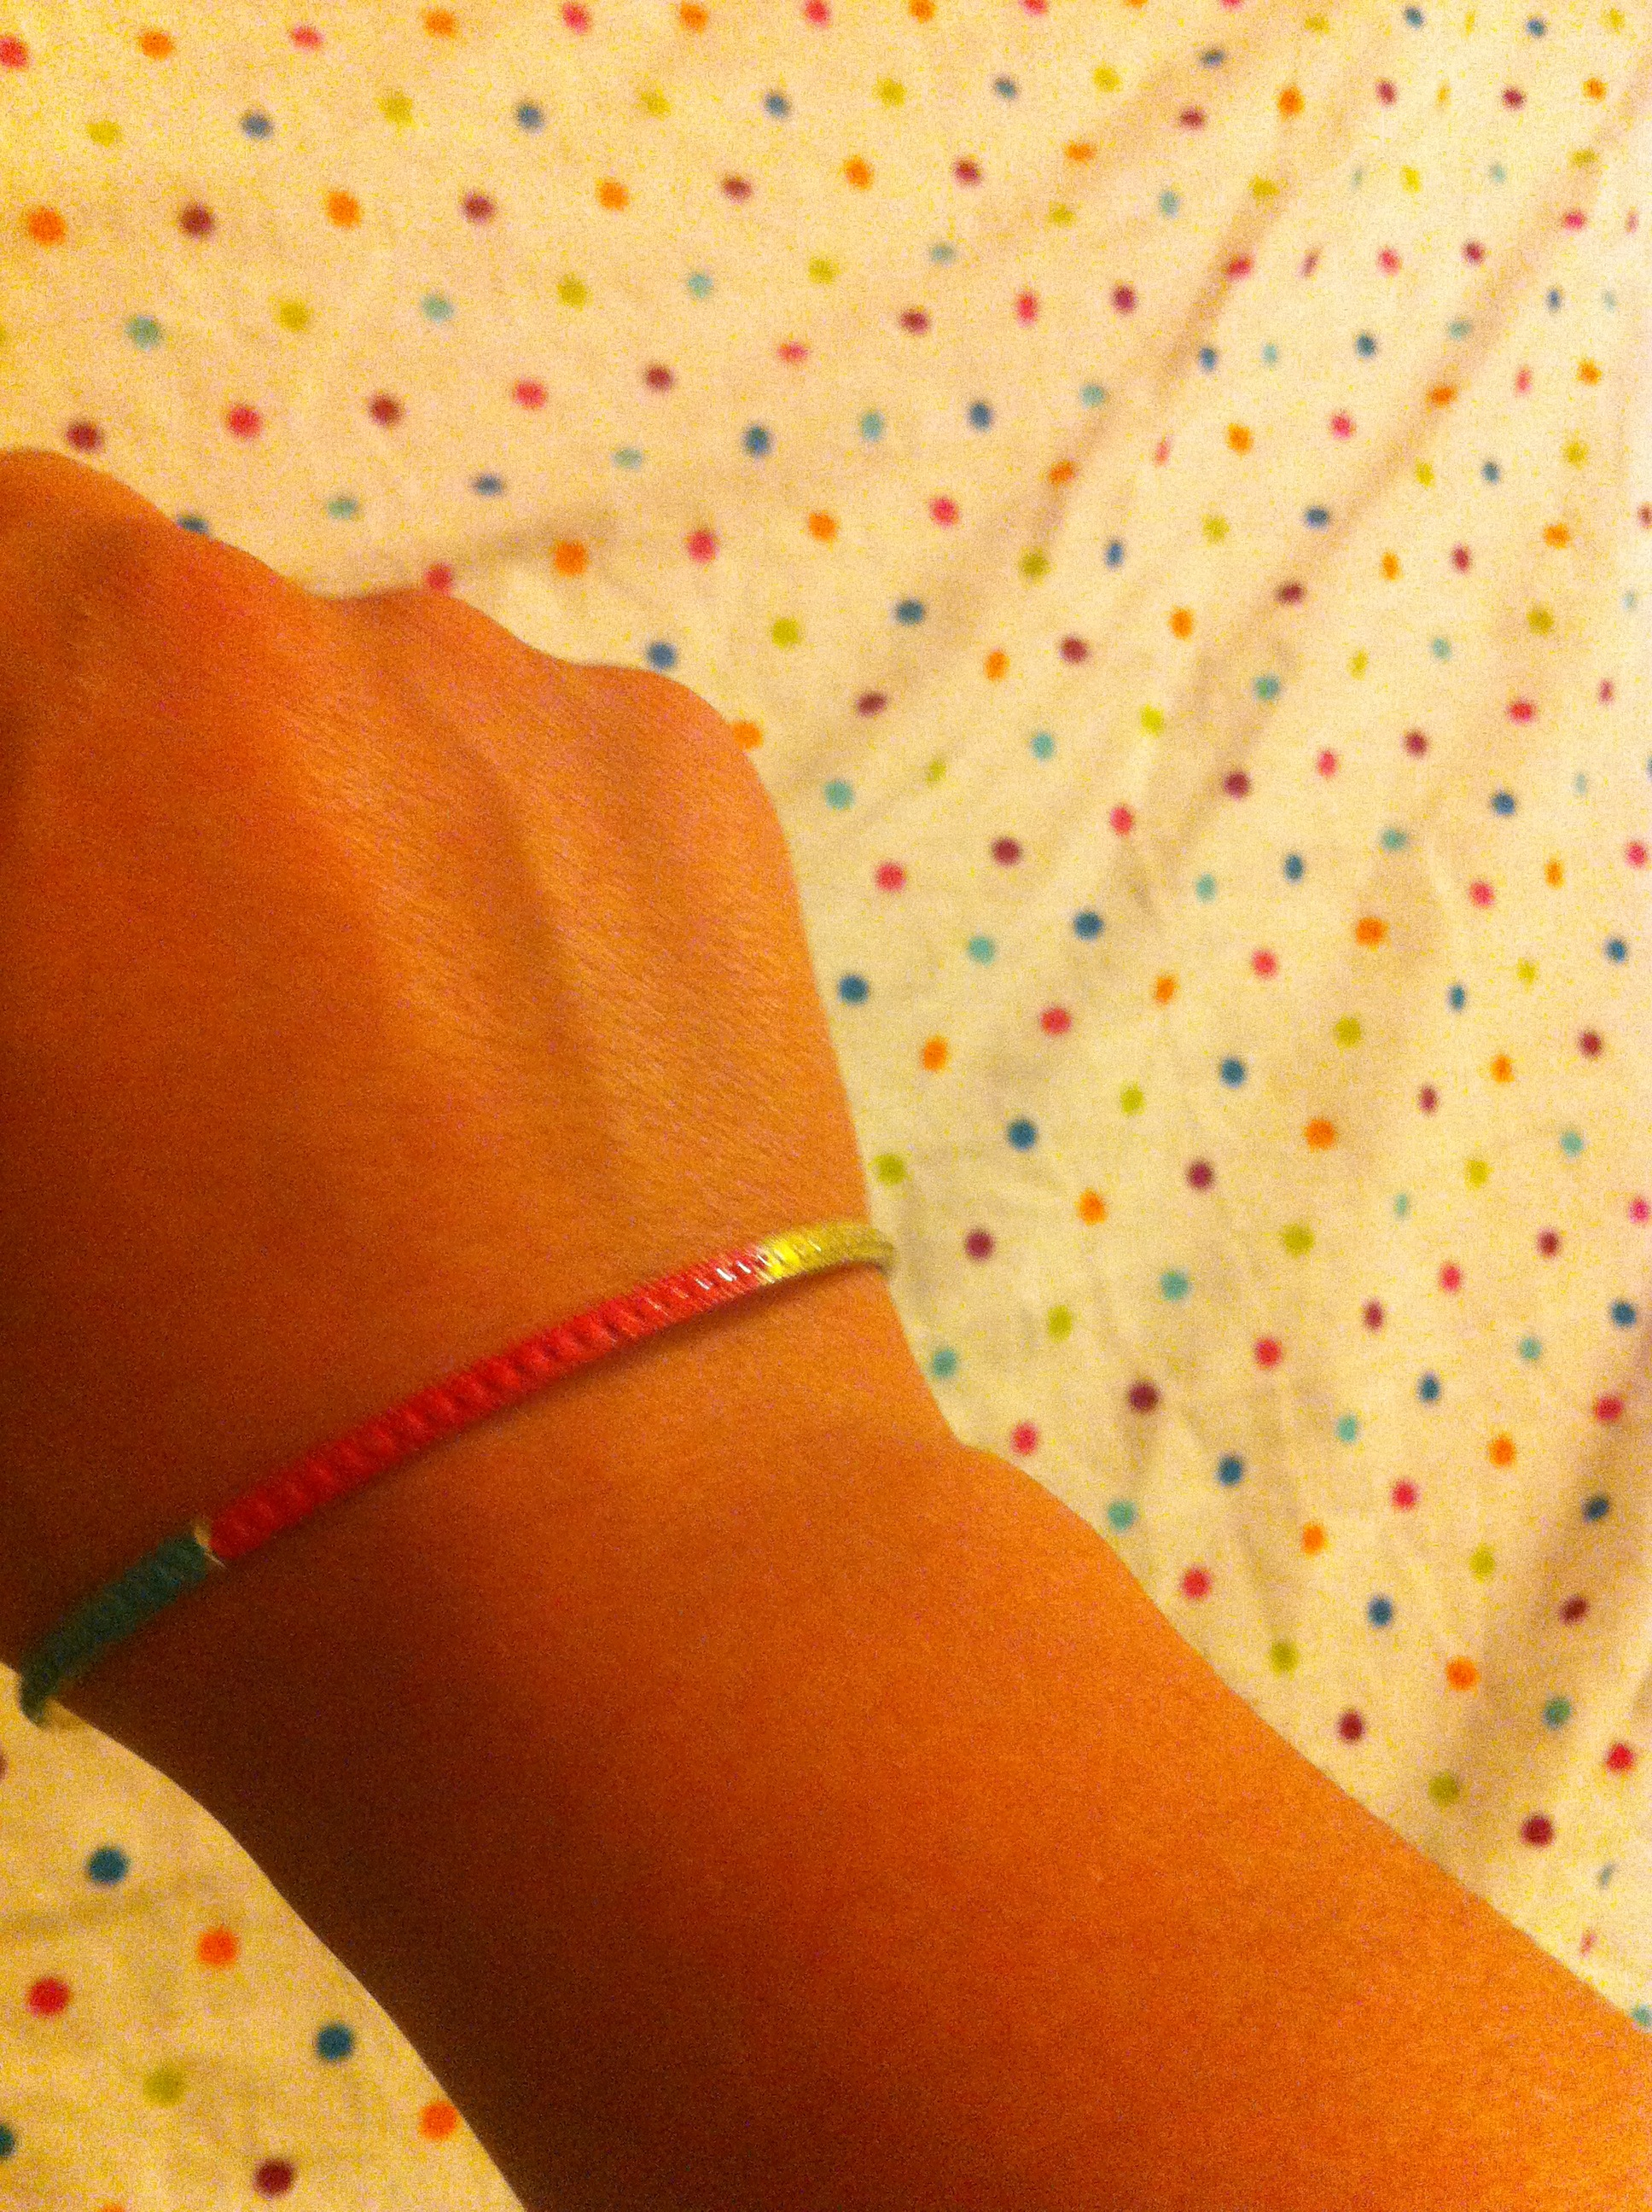 Change An Ugly Bracelet To An Awesome One